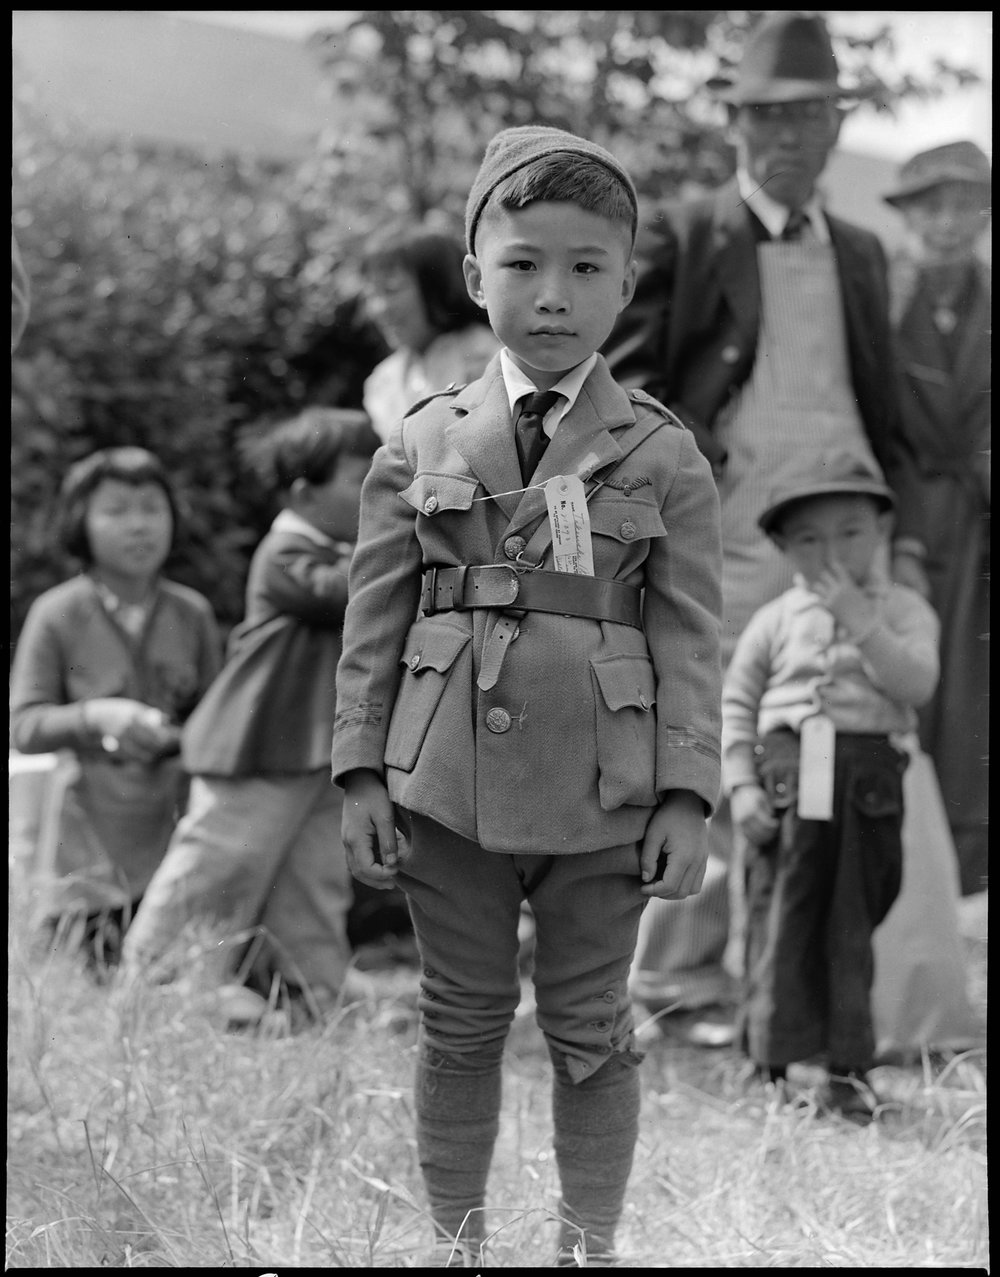 May 9, 1942 — Centerville, California. This youngster is awaiting evacuation bus. Evacuees of Japanese ancestry will be housed in War Relocation Authority centers for the duration.